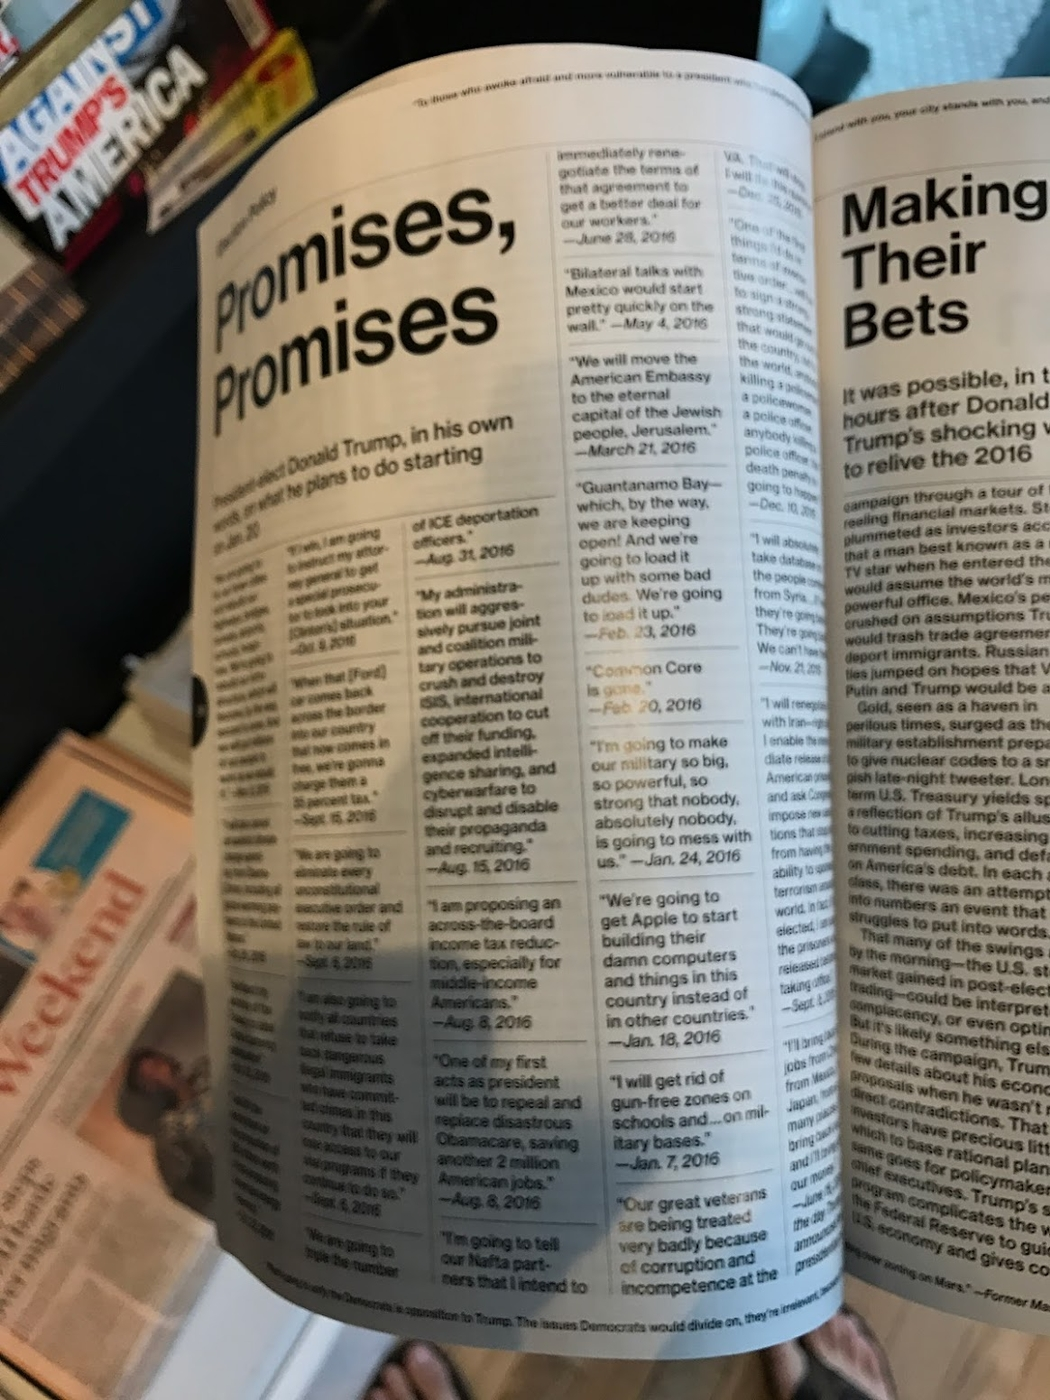 [words] [editorial] [layout] bloomberg bussiness week